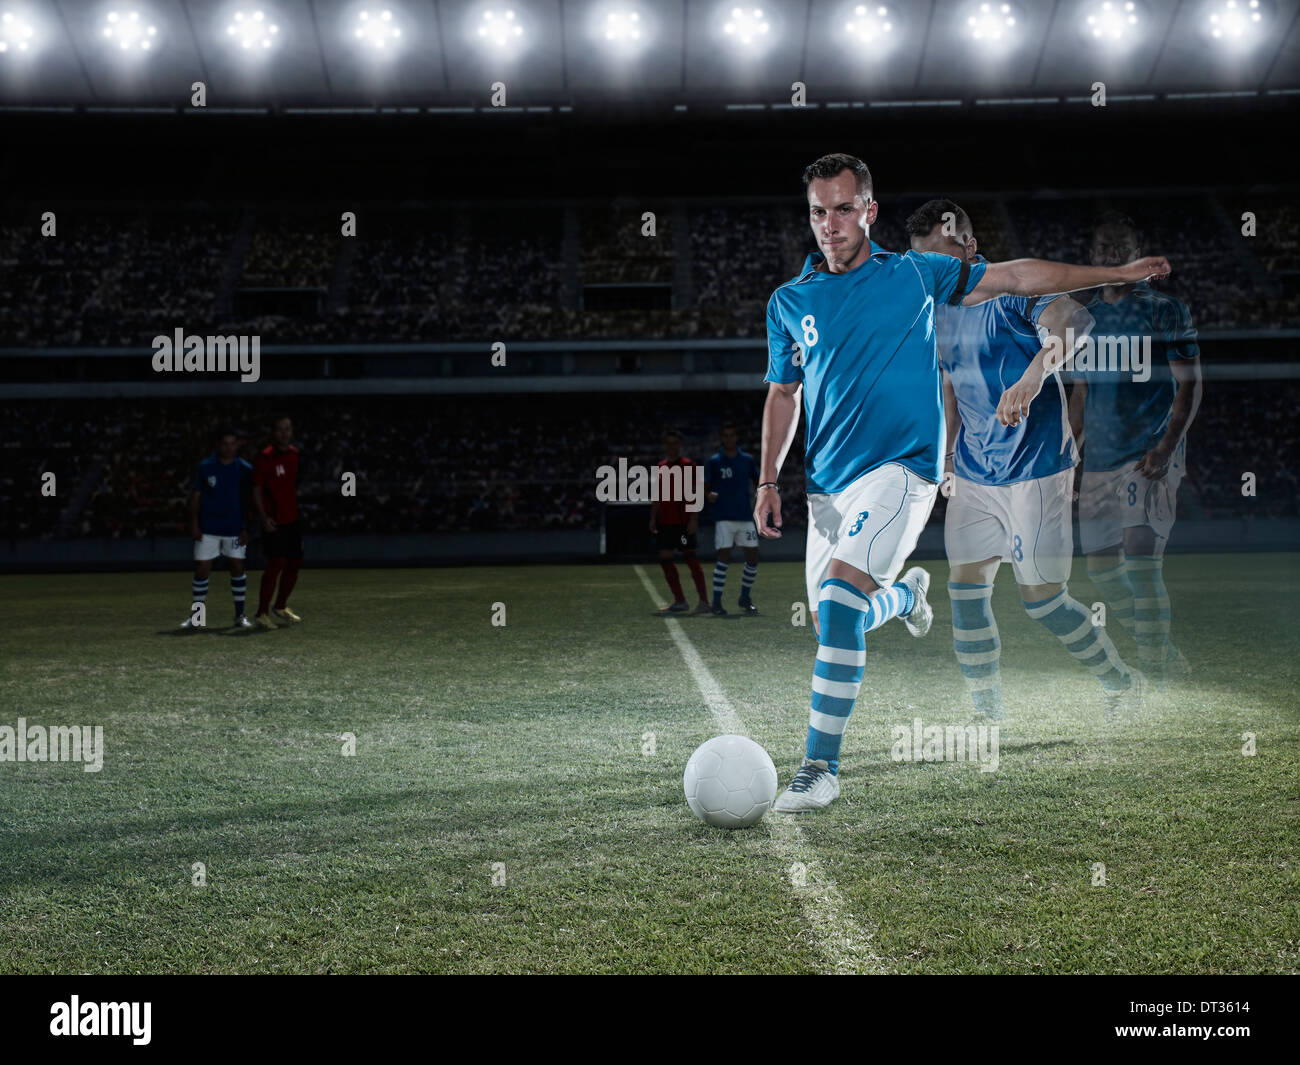 Soccer player approaching ball on field - Stock Image